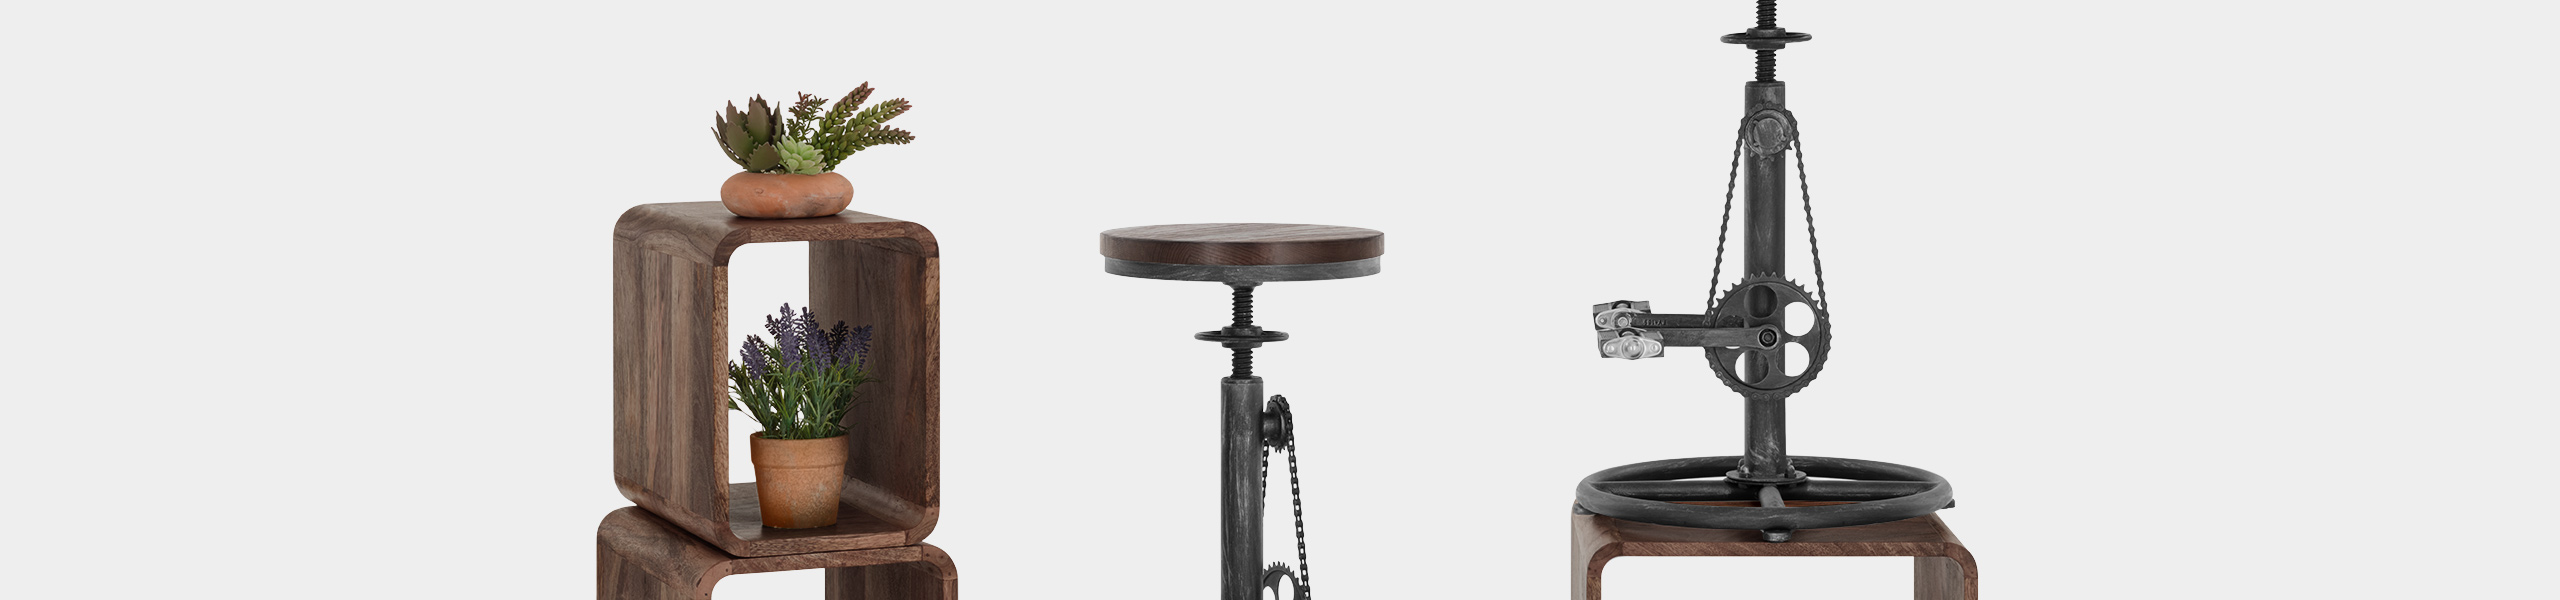 Pedal Stool Video Banner